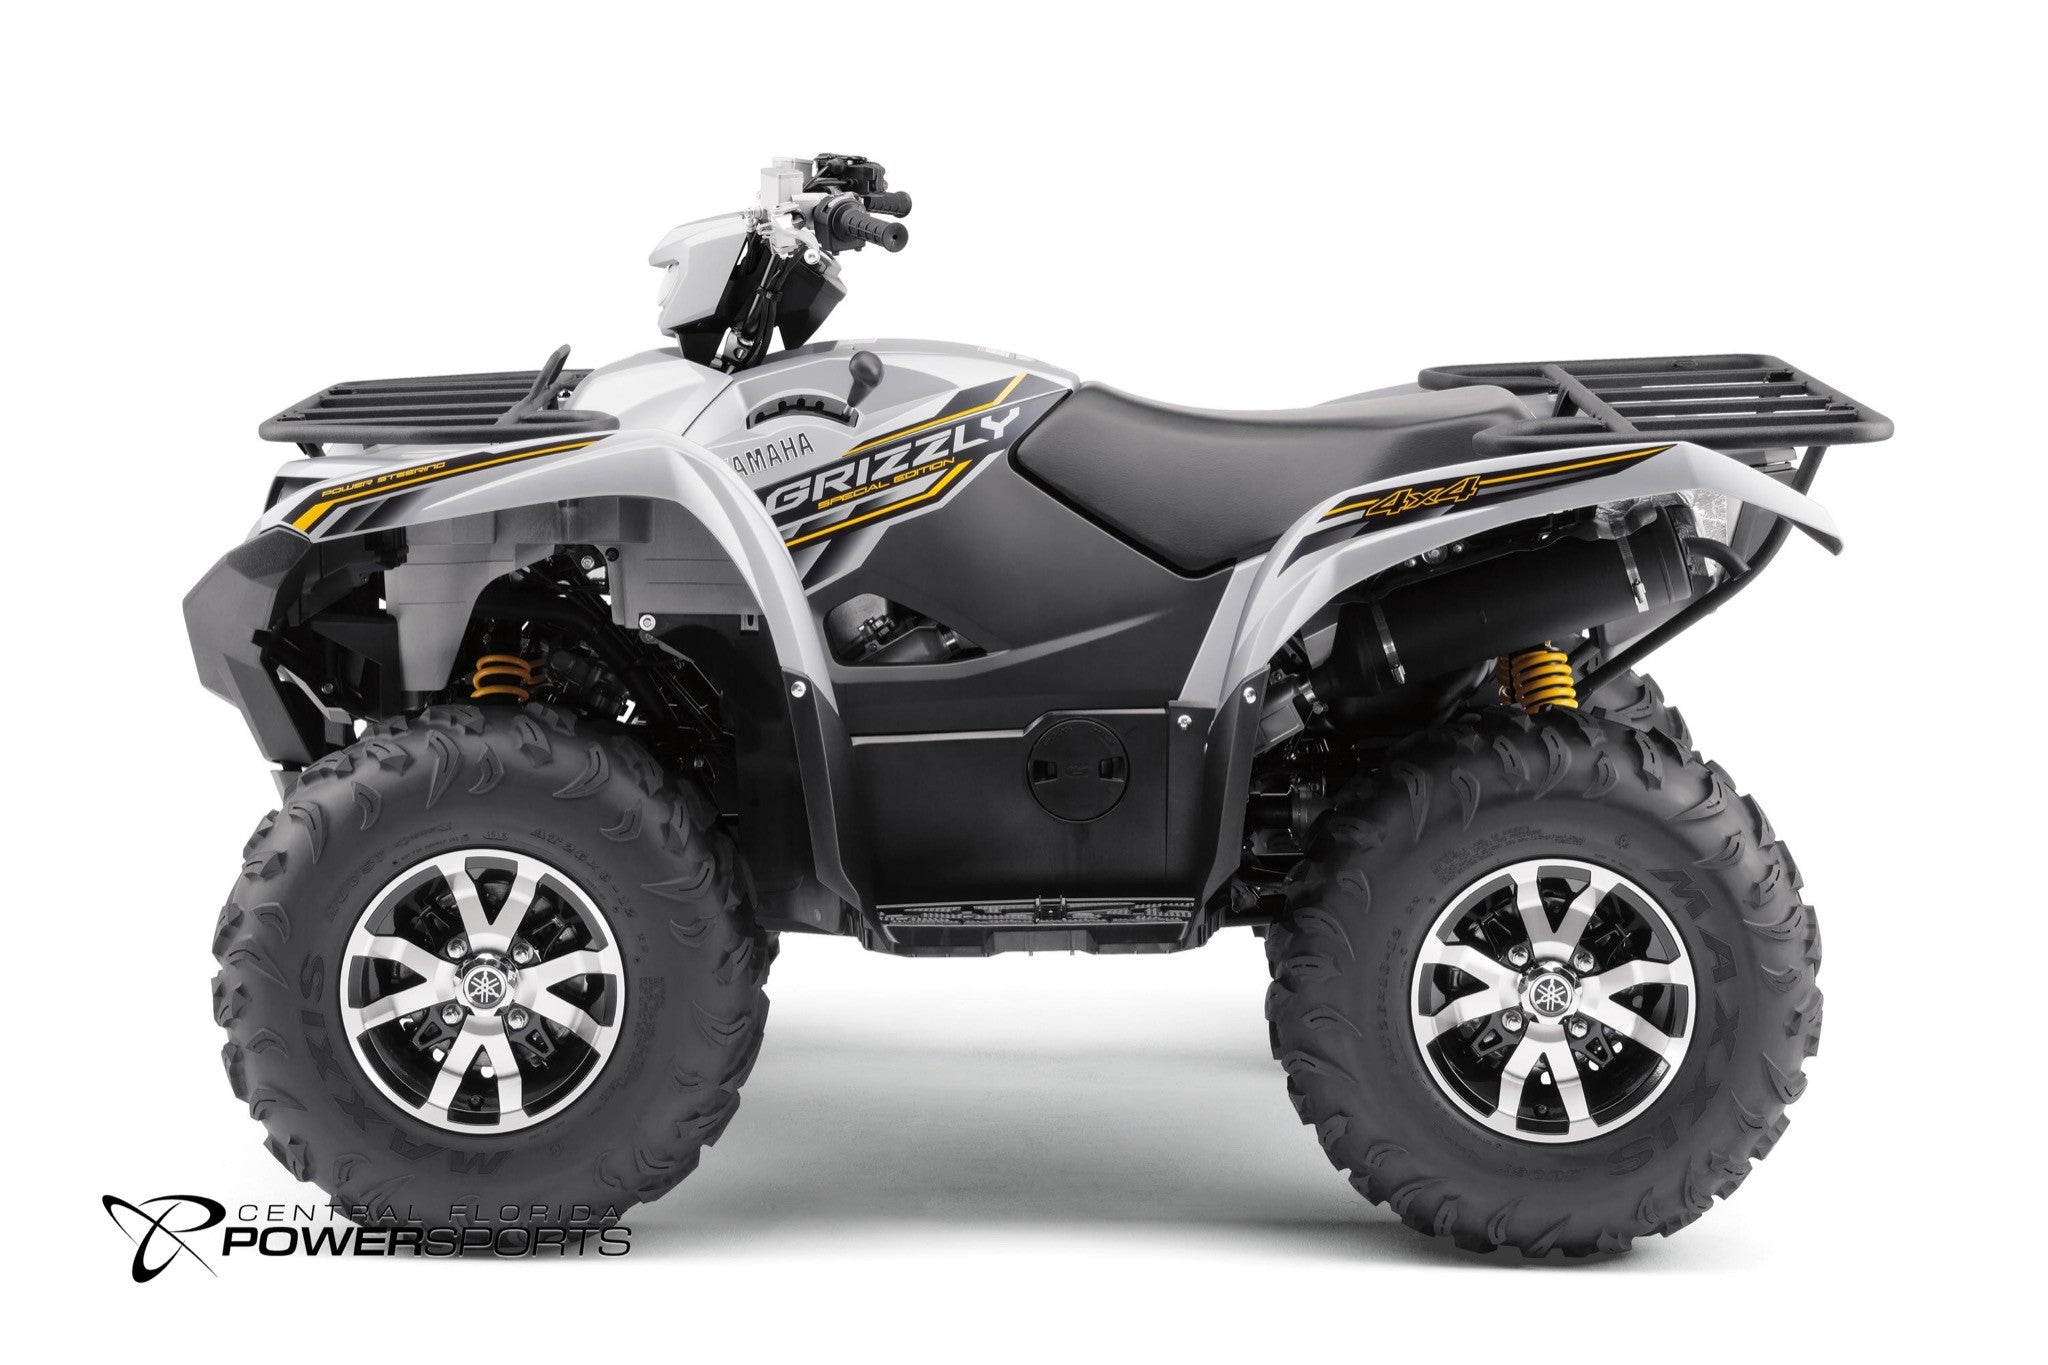 2017 yamaha grizzly 700 eps special edition se 4wd central florida powersports. Black Bedroom Furniture Sets. Home Design Ideas